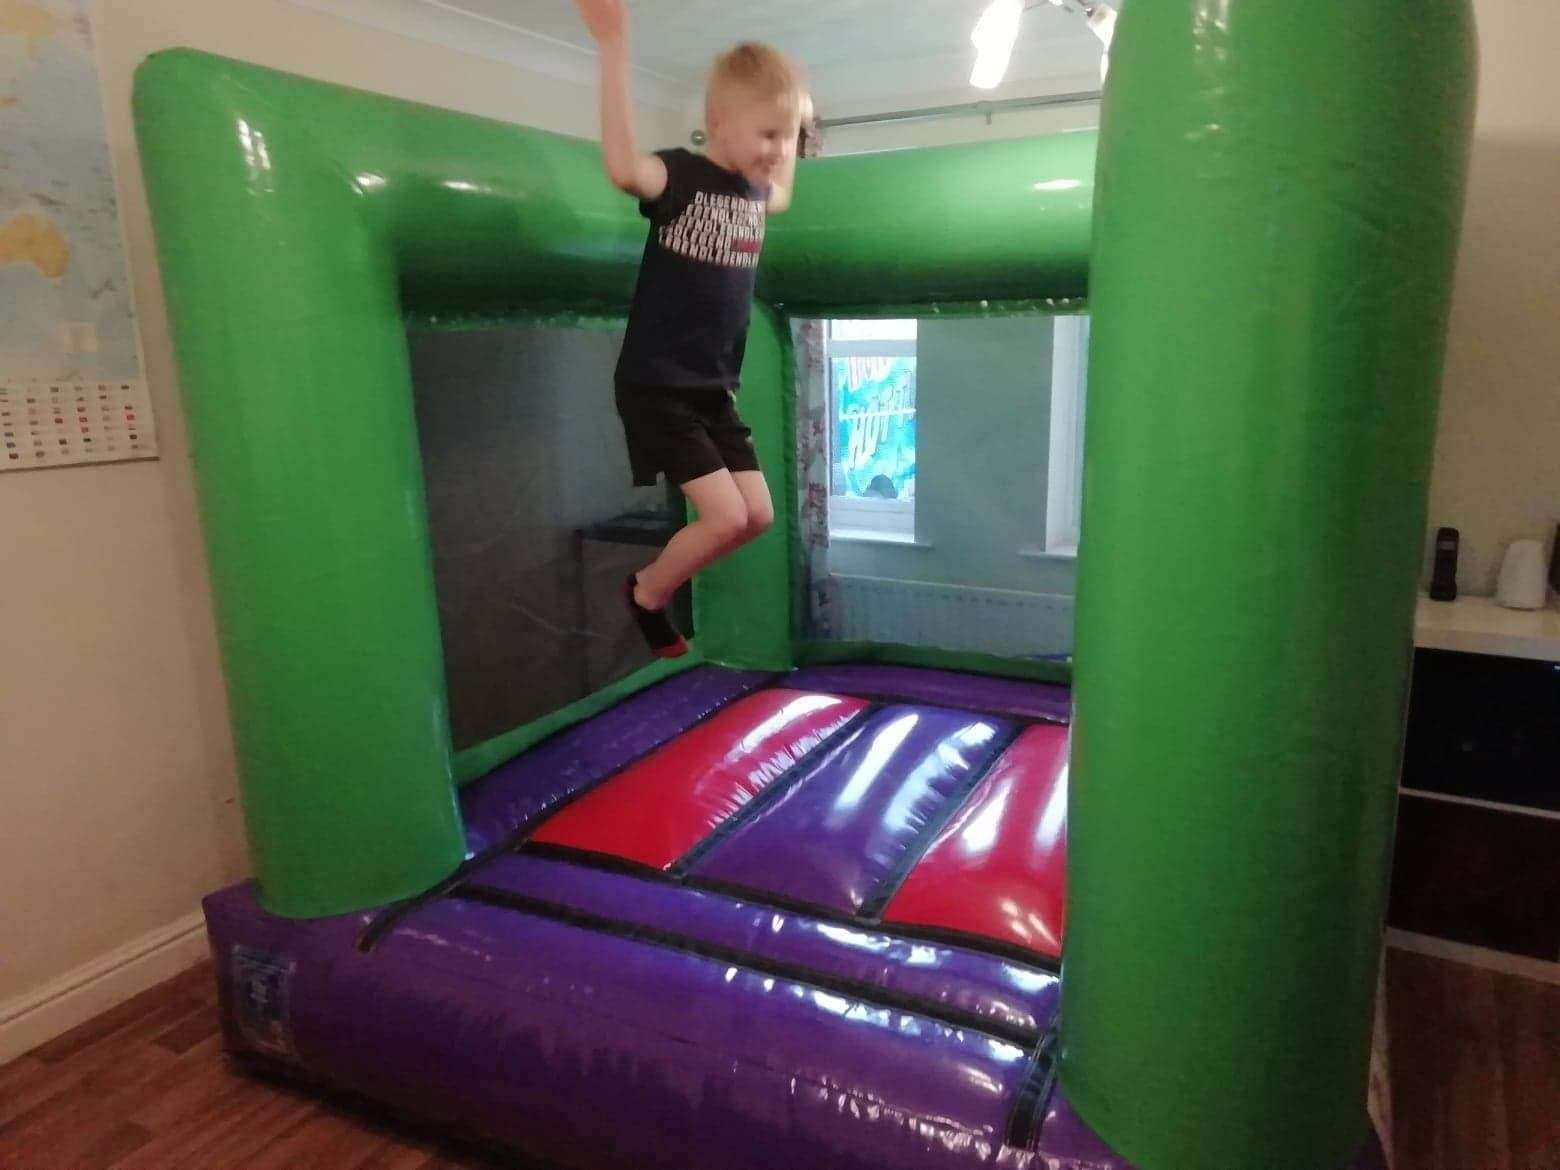 The indoor bouncy castles need 3m by 3m floorspace